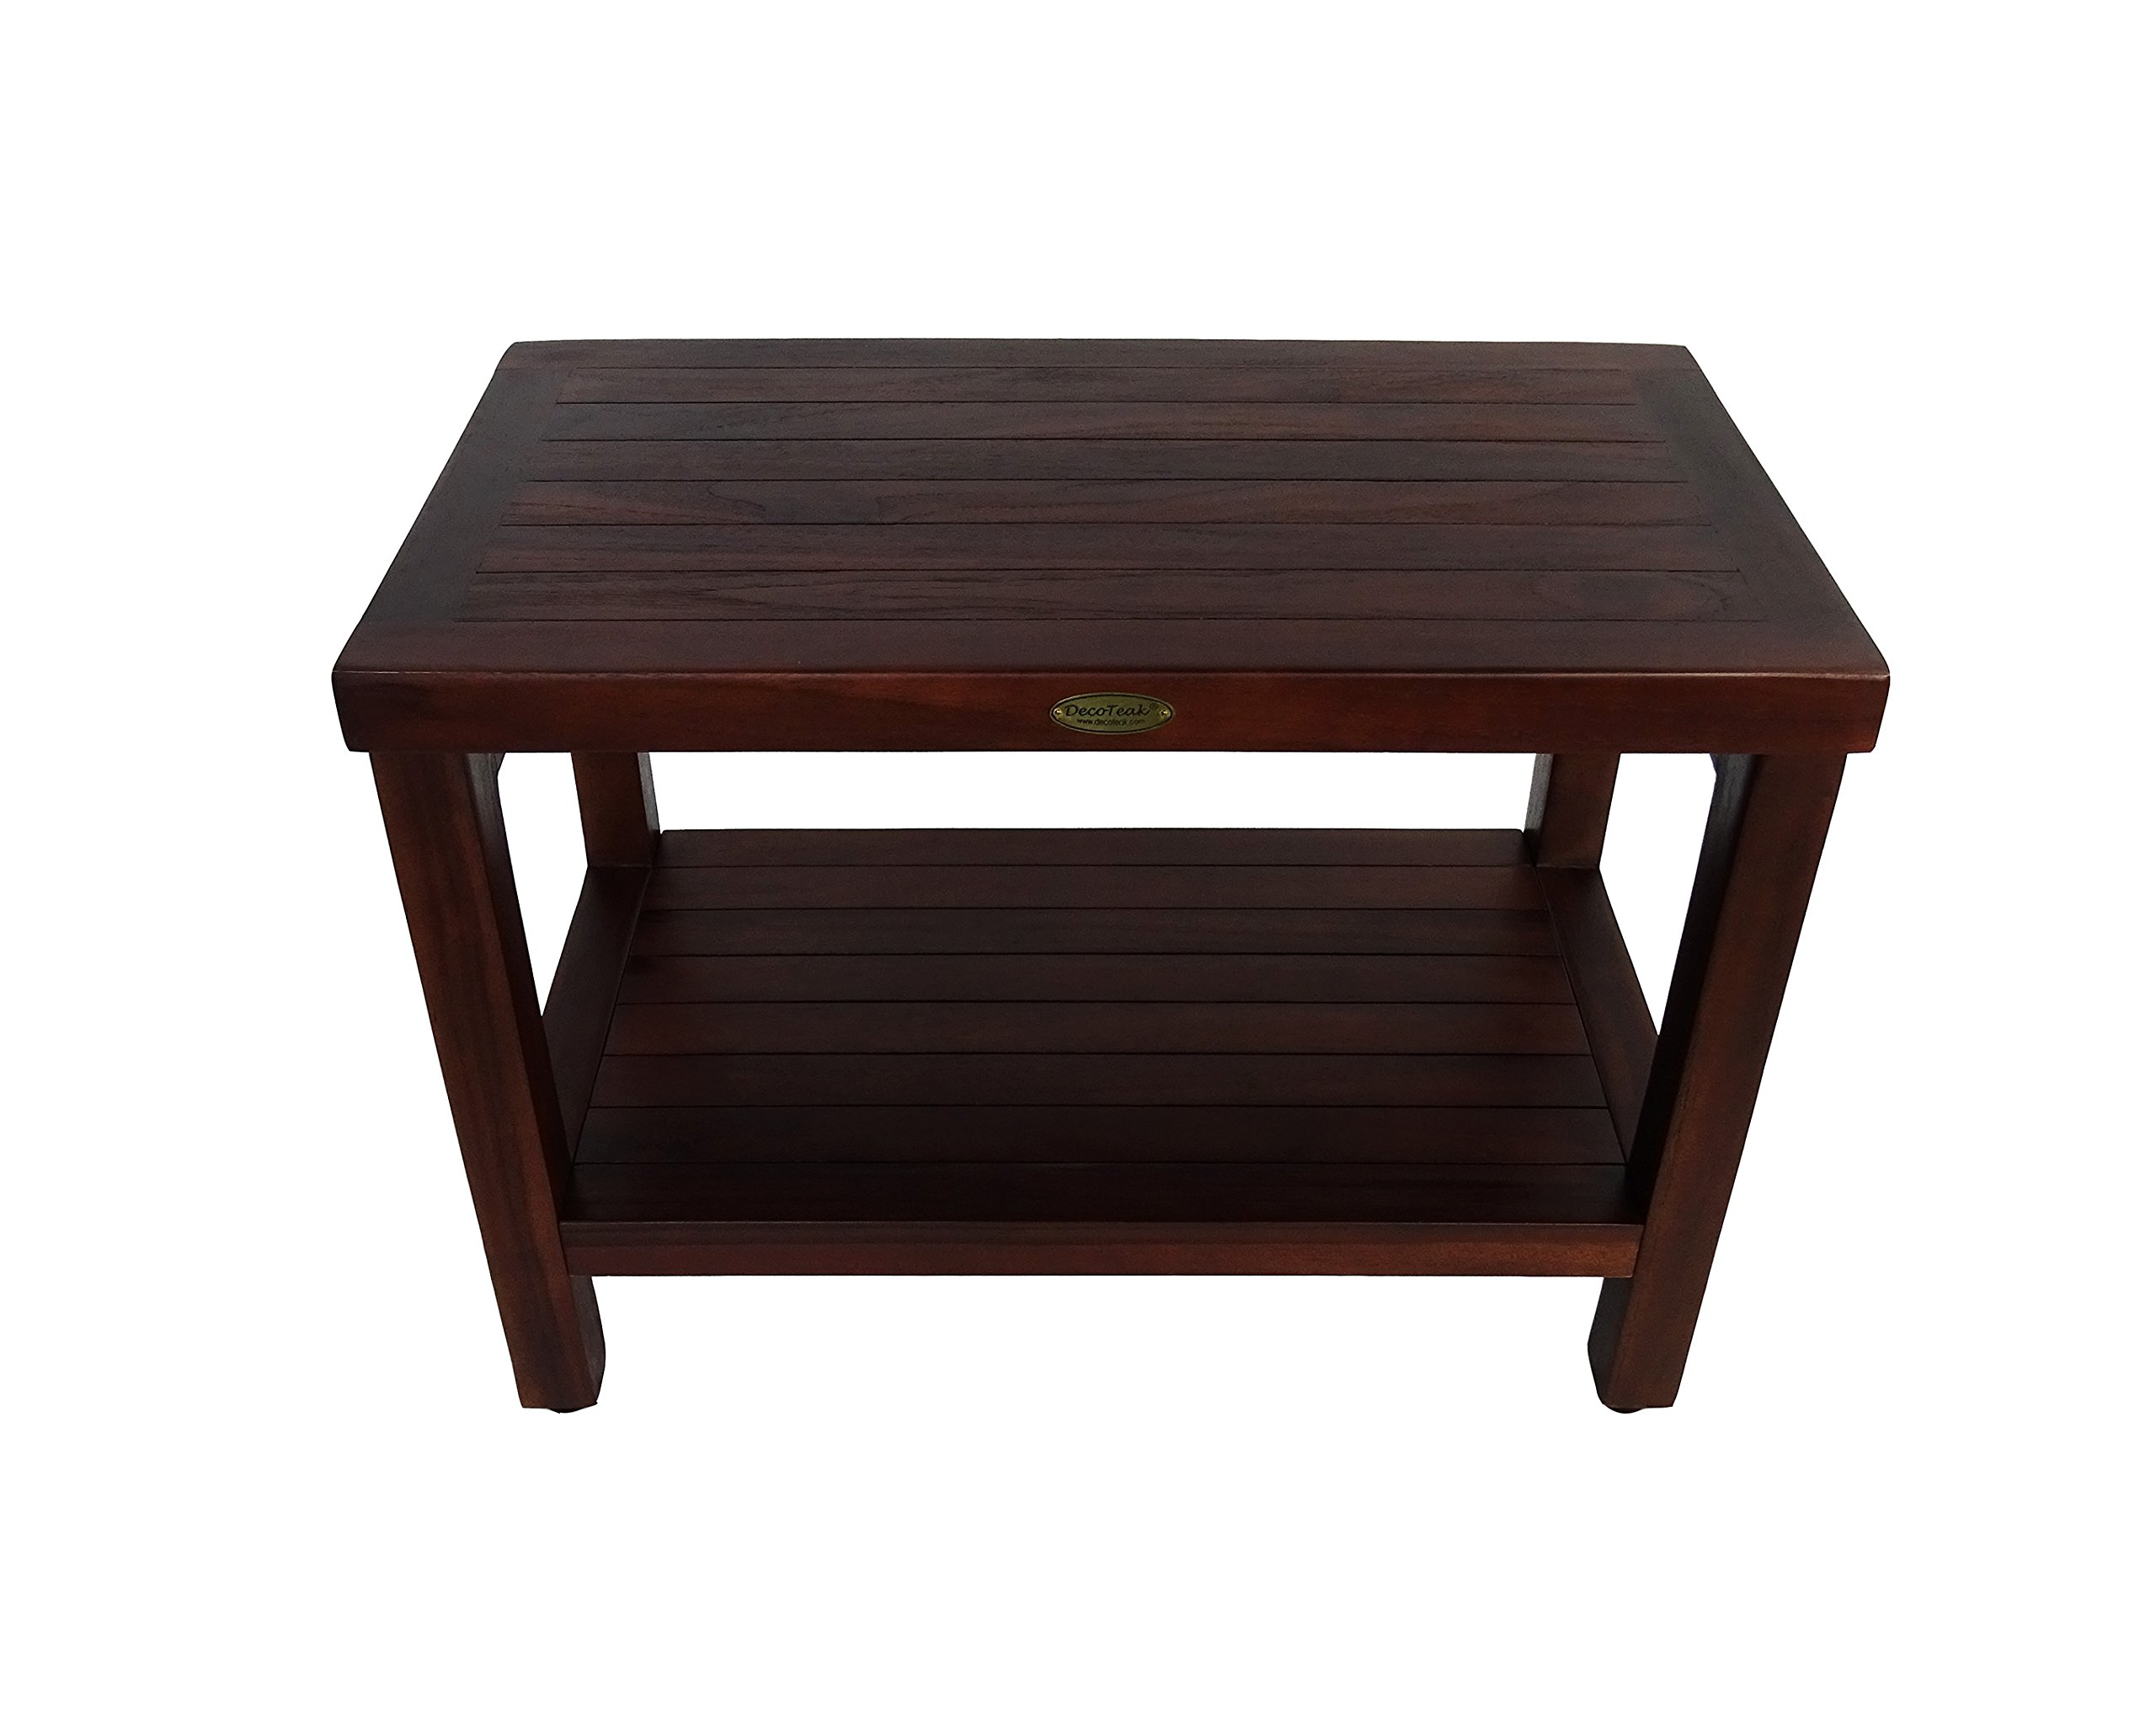 24'' Teak Shower Bench With Shelf- Adjustable Height Feet- Bath, Shower, Sauna, Locker Room